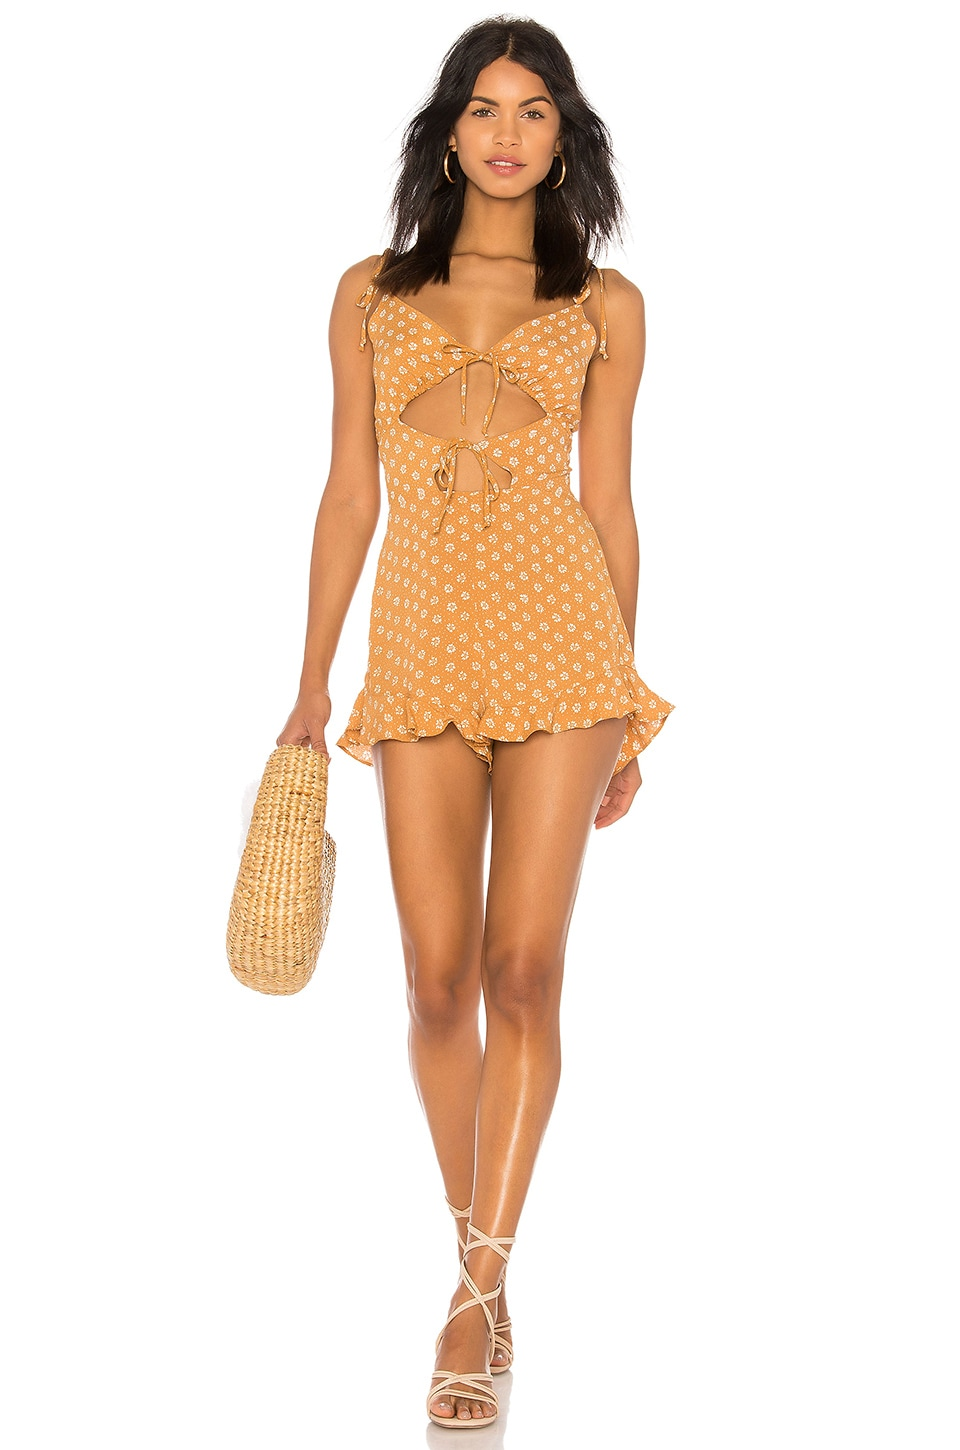 Blue Life Retro Romper in Primrose Polka Dot Butterscotch